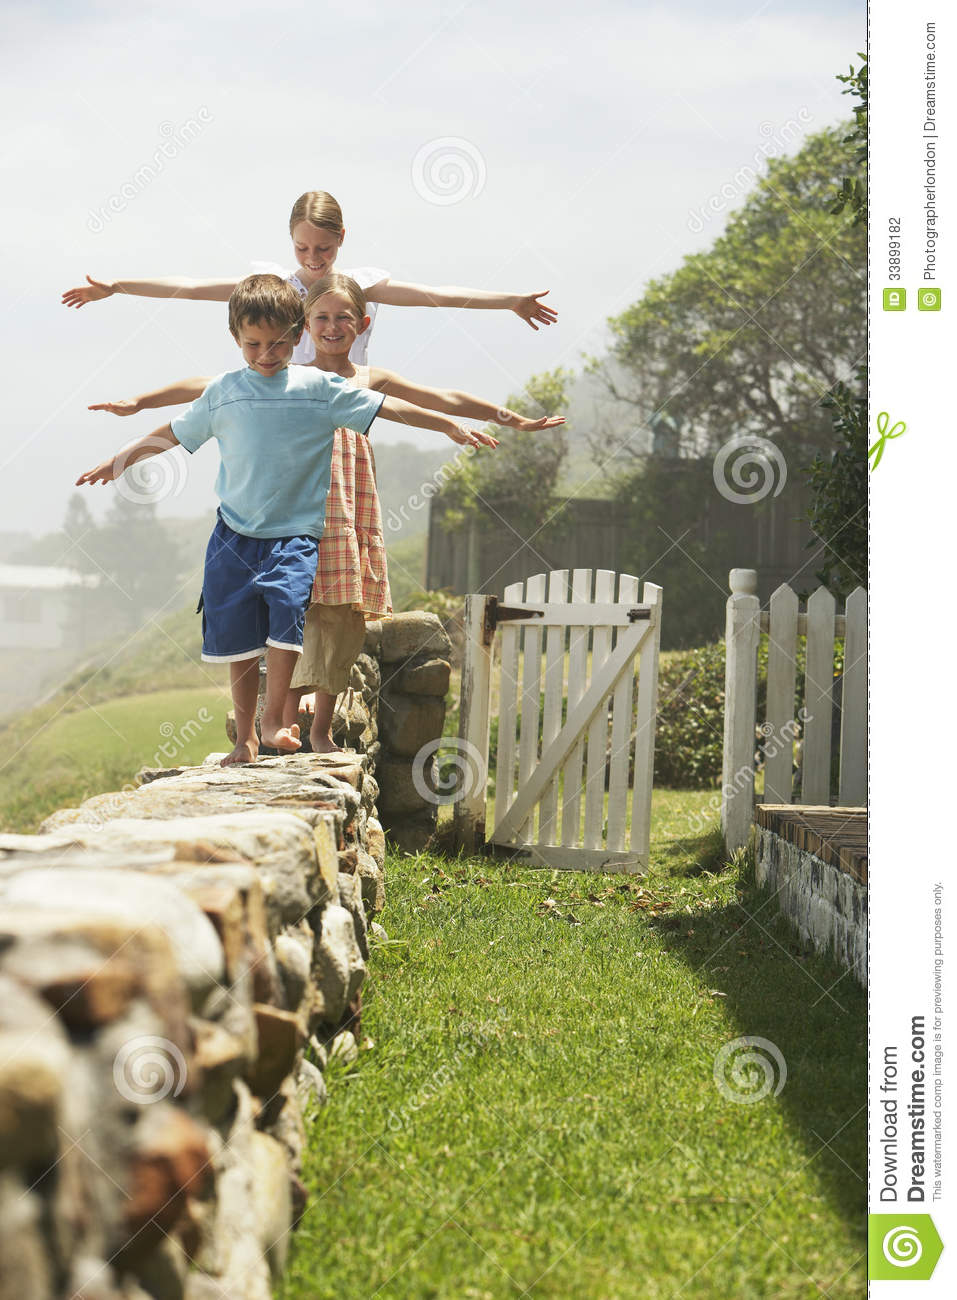 siblings-balancing-walking-row-stone-wal